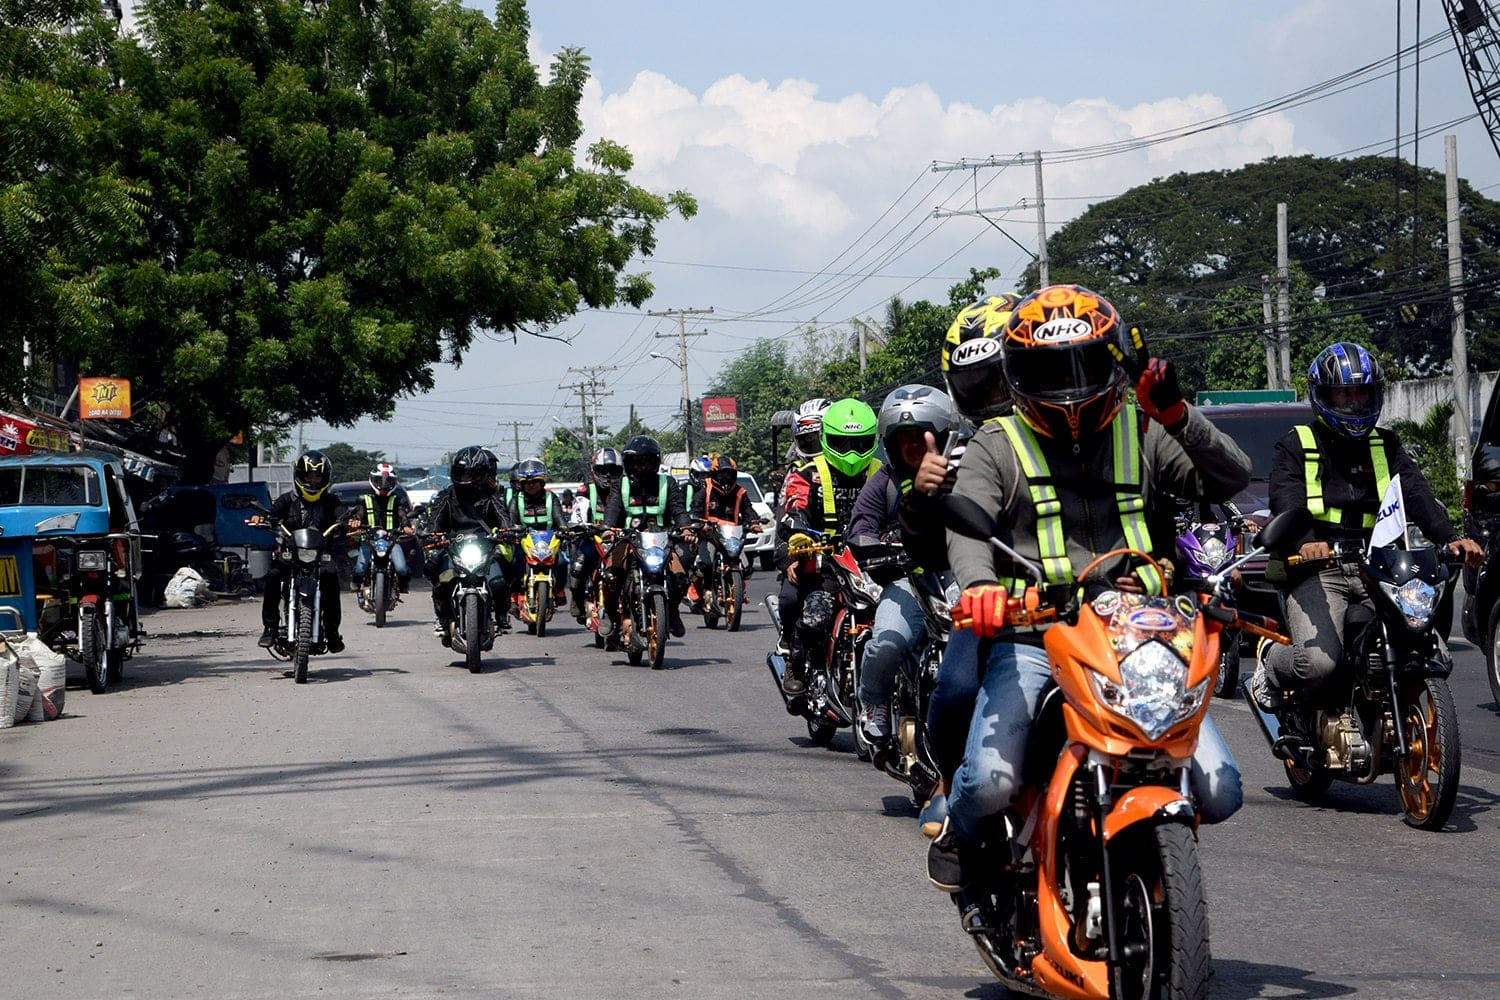 Undas 2017: Motorcycle Manufacturers' Group has Safety Tips for Riders